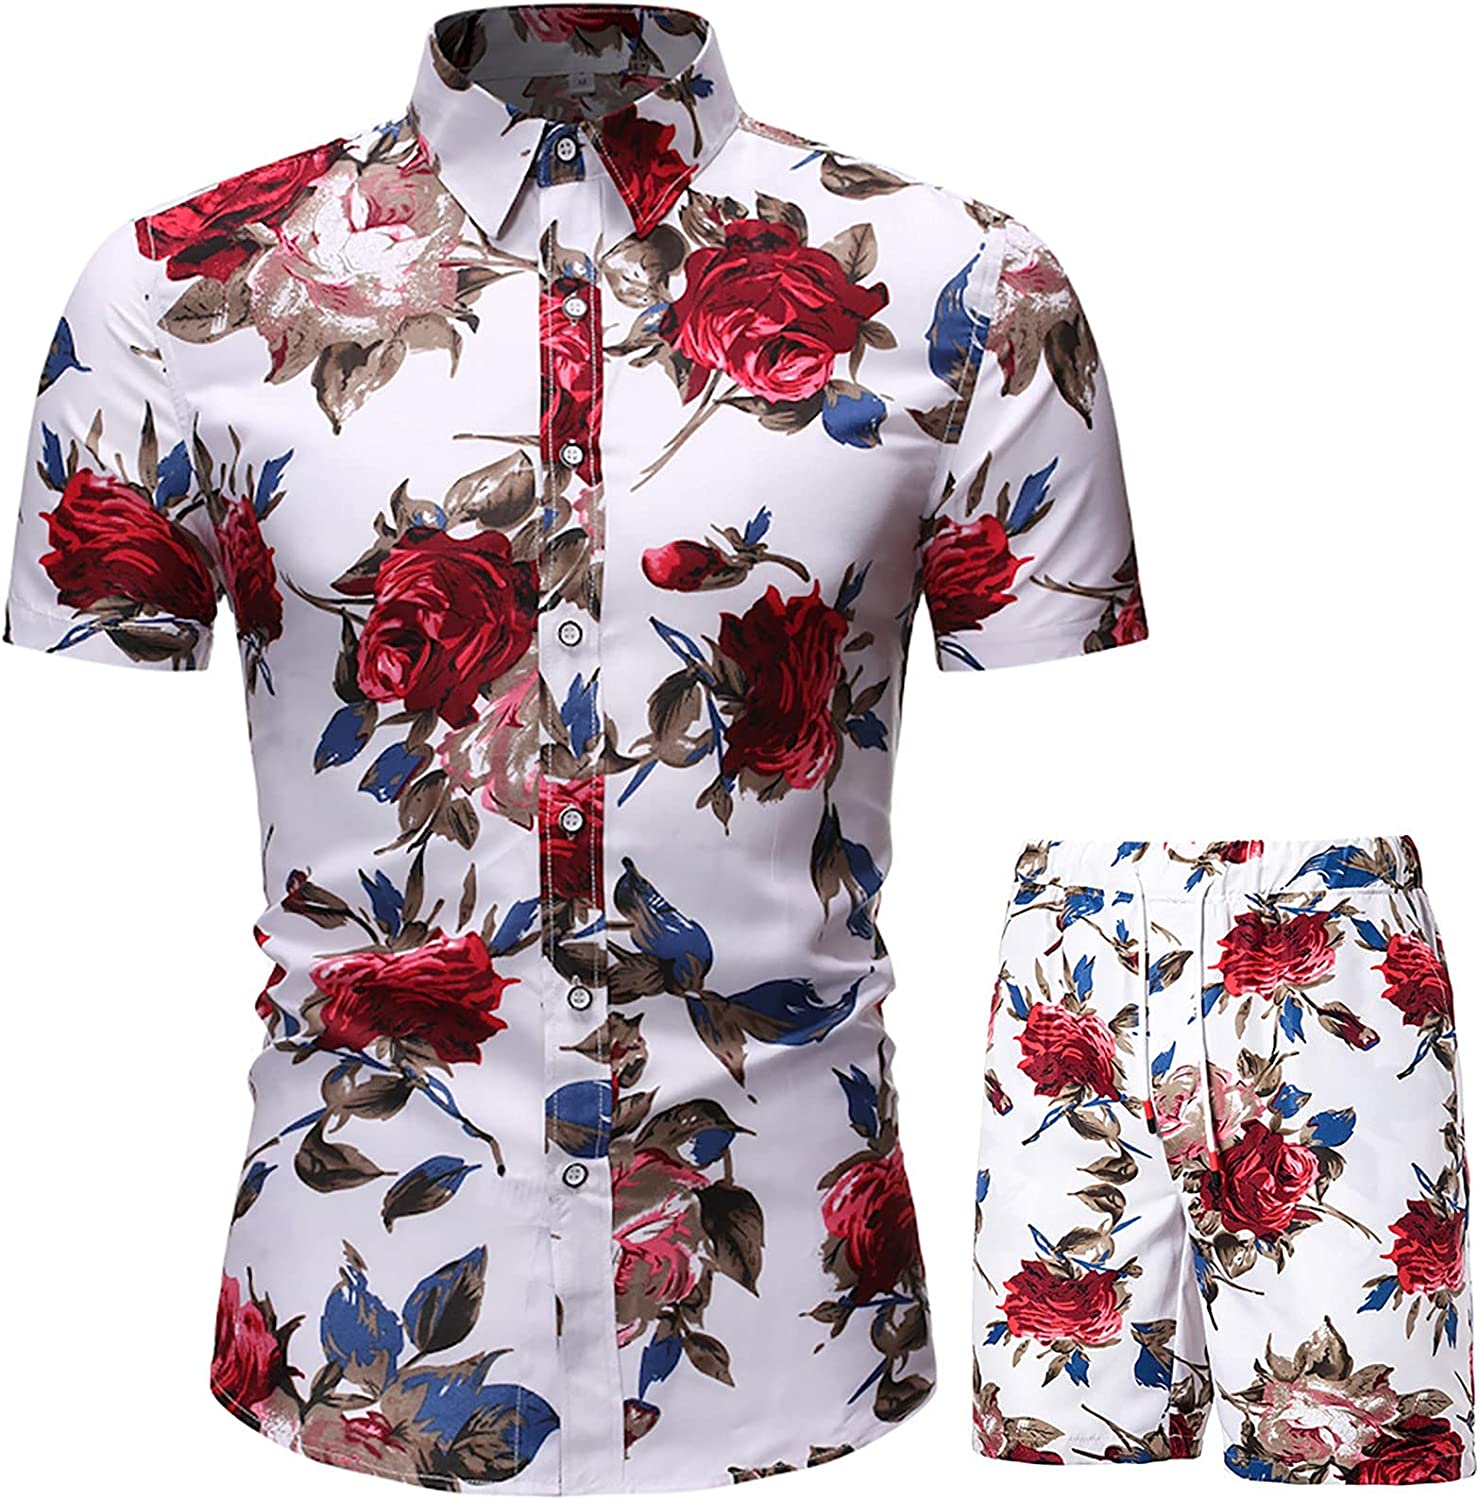 Men 2 Piece Short Sets Outfits Summer Beach Wear Two-Piece Suits Floral Hawaiian Sweat Suit Sleeve Shirts & Shorts Sets